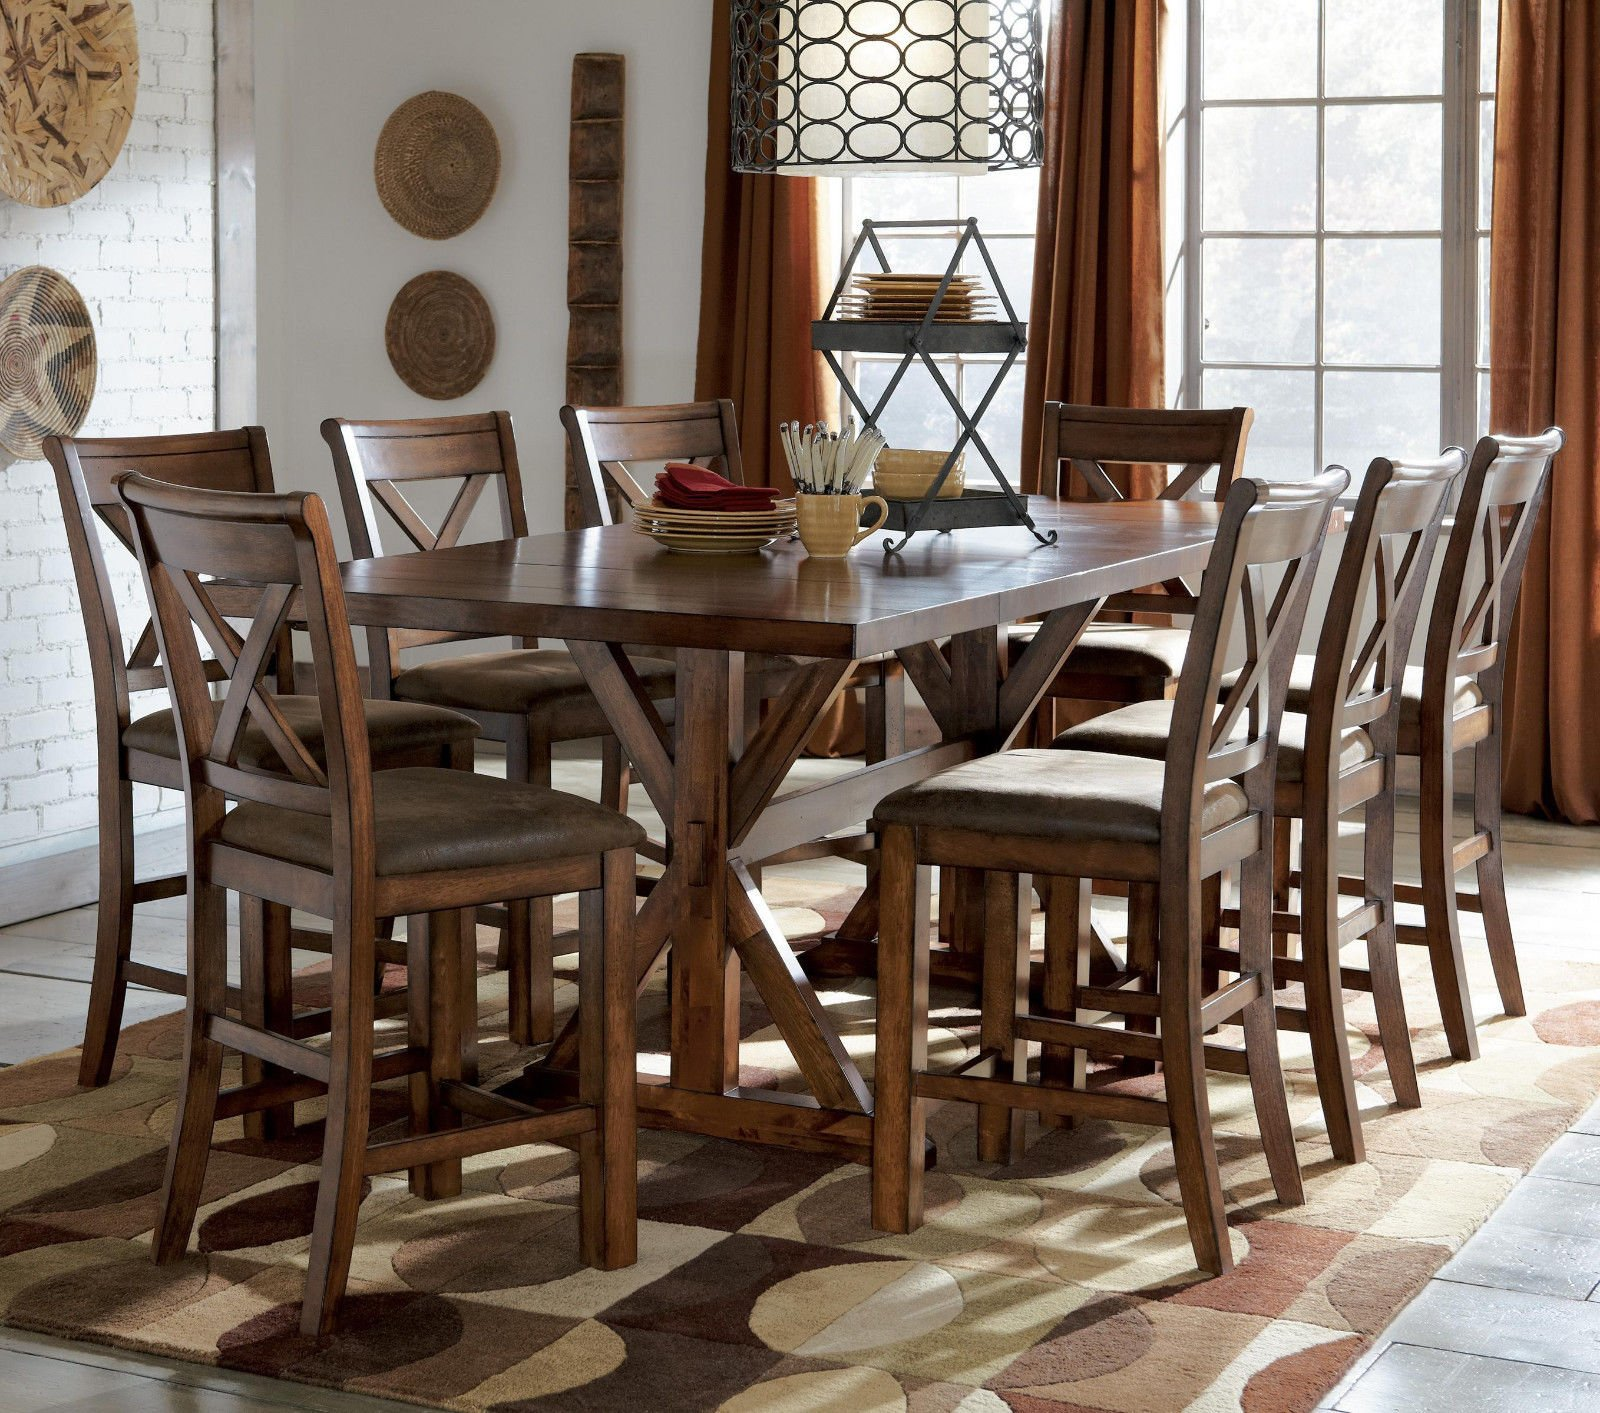 Wooden Trestle Dining Table Design